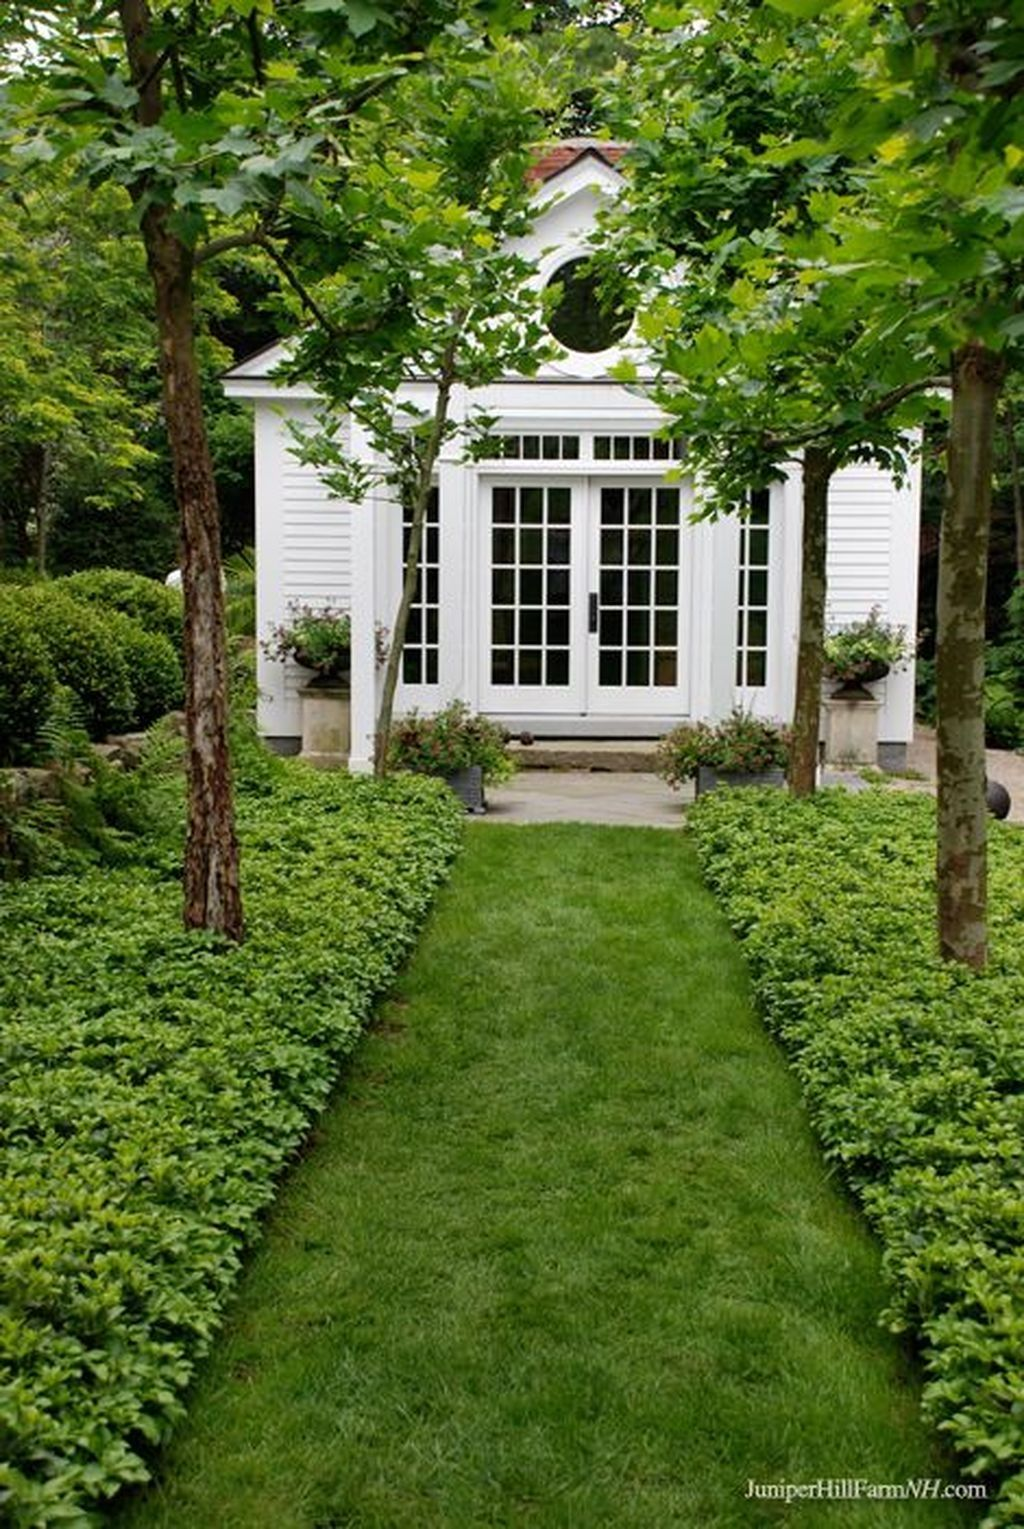 A Front Garden Design Must Be Done With A Fresh Perspective Take In The Appearance Of Your Home By Str Beautiful Gardens Garden Inspiration Landscape Design